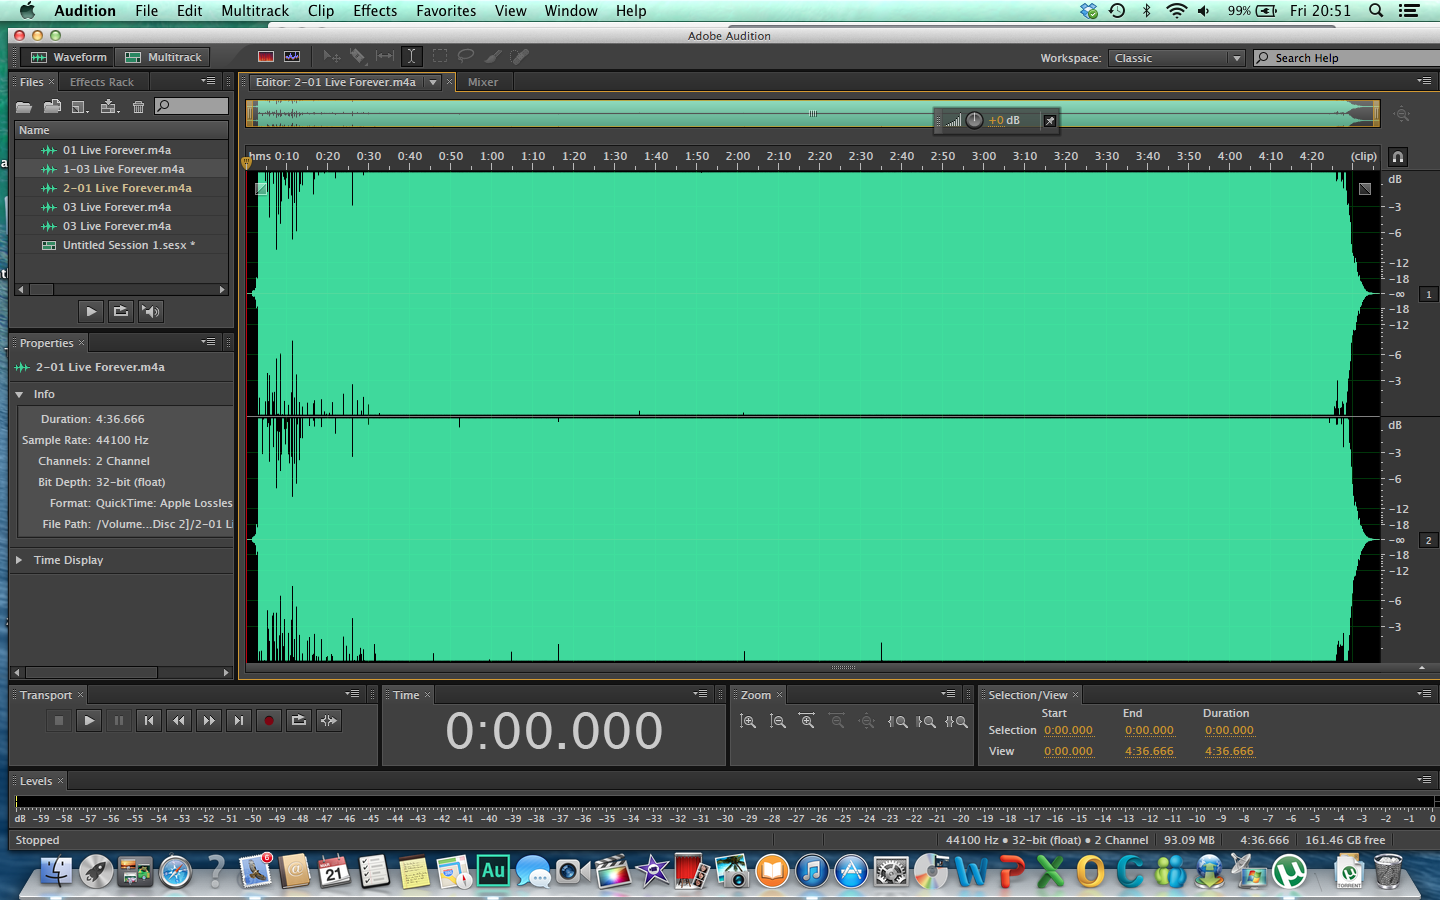 Waveforms of Live Forever of Stop the Clocks (top) and Time Flies (bottom)